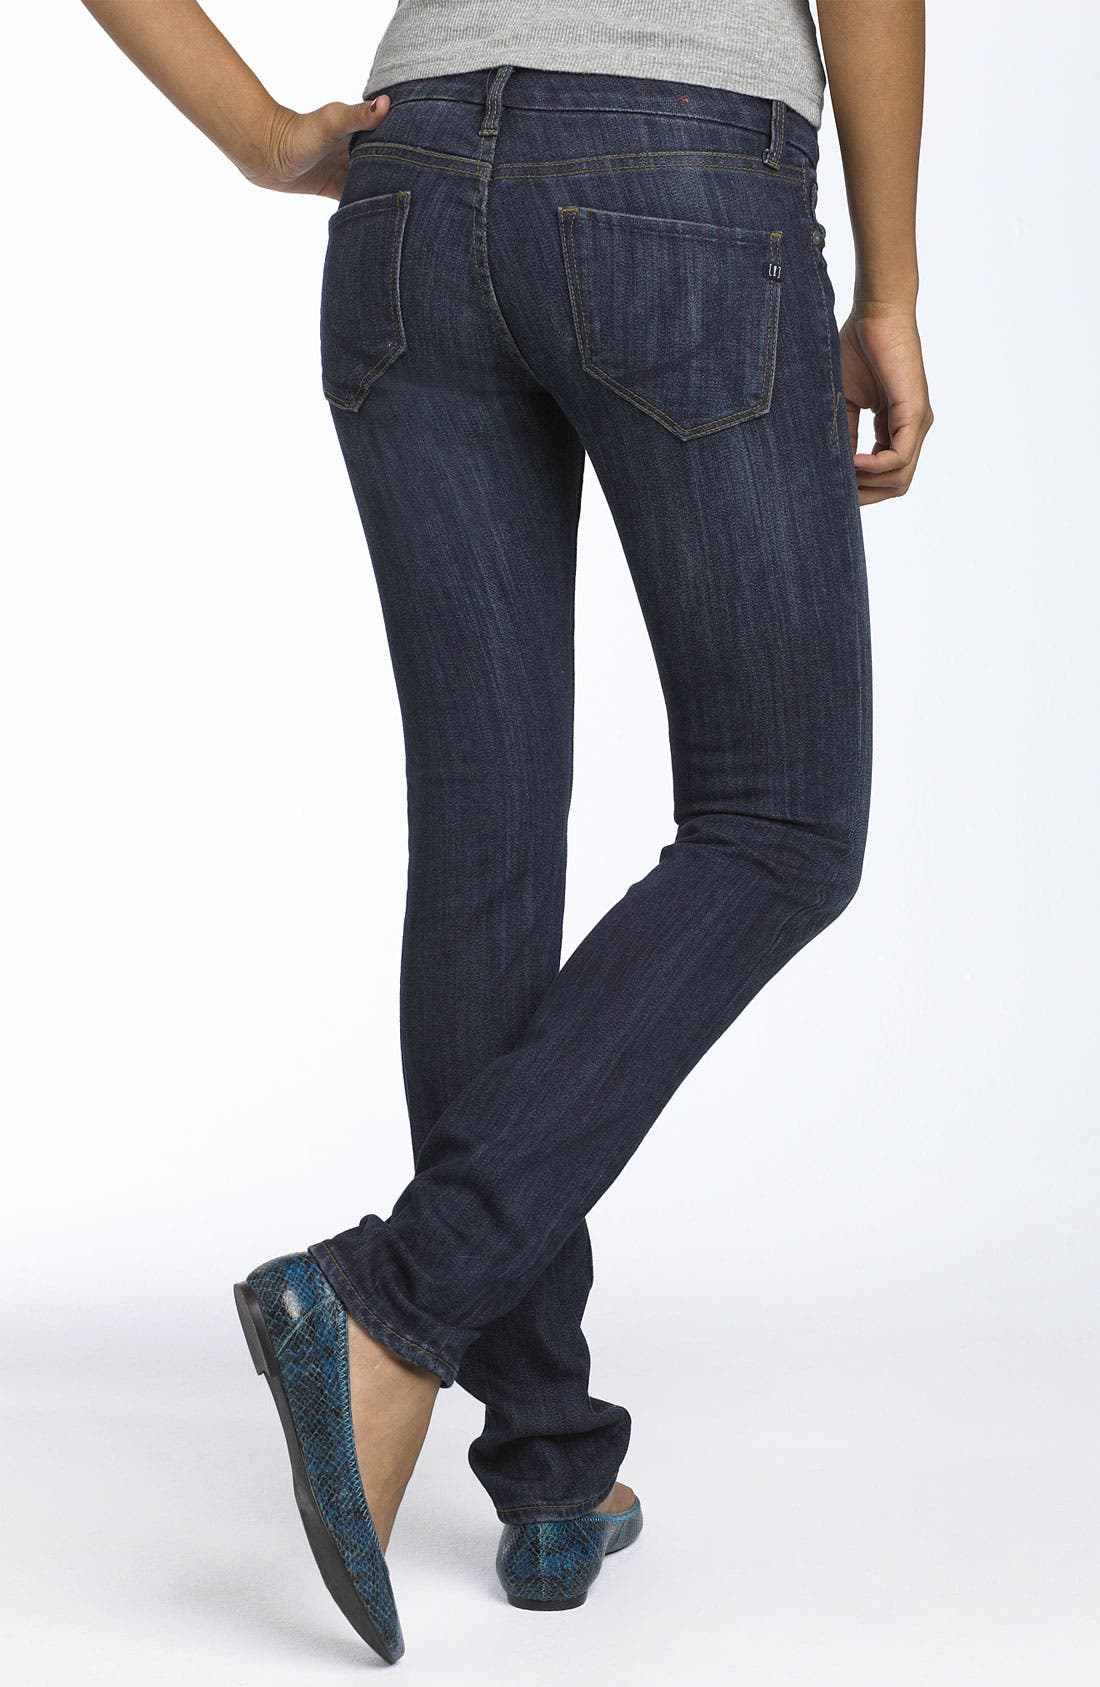 Alternate Image 1 Selected - !iT JEANS 'Rising Starlet' Skinny Stretch Jeans (Juniors)